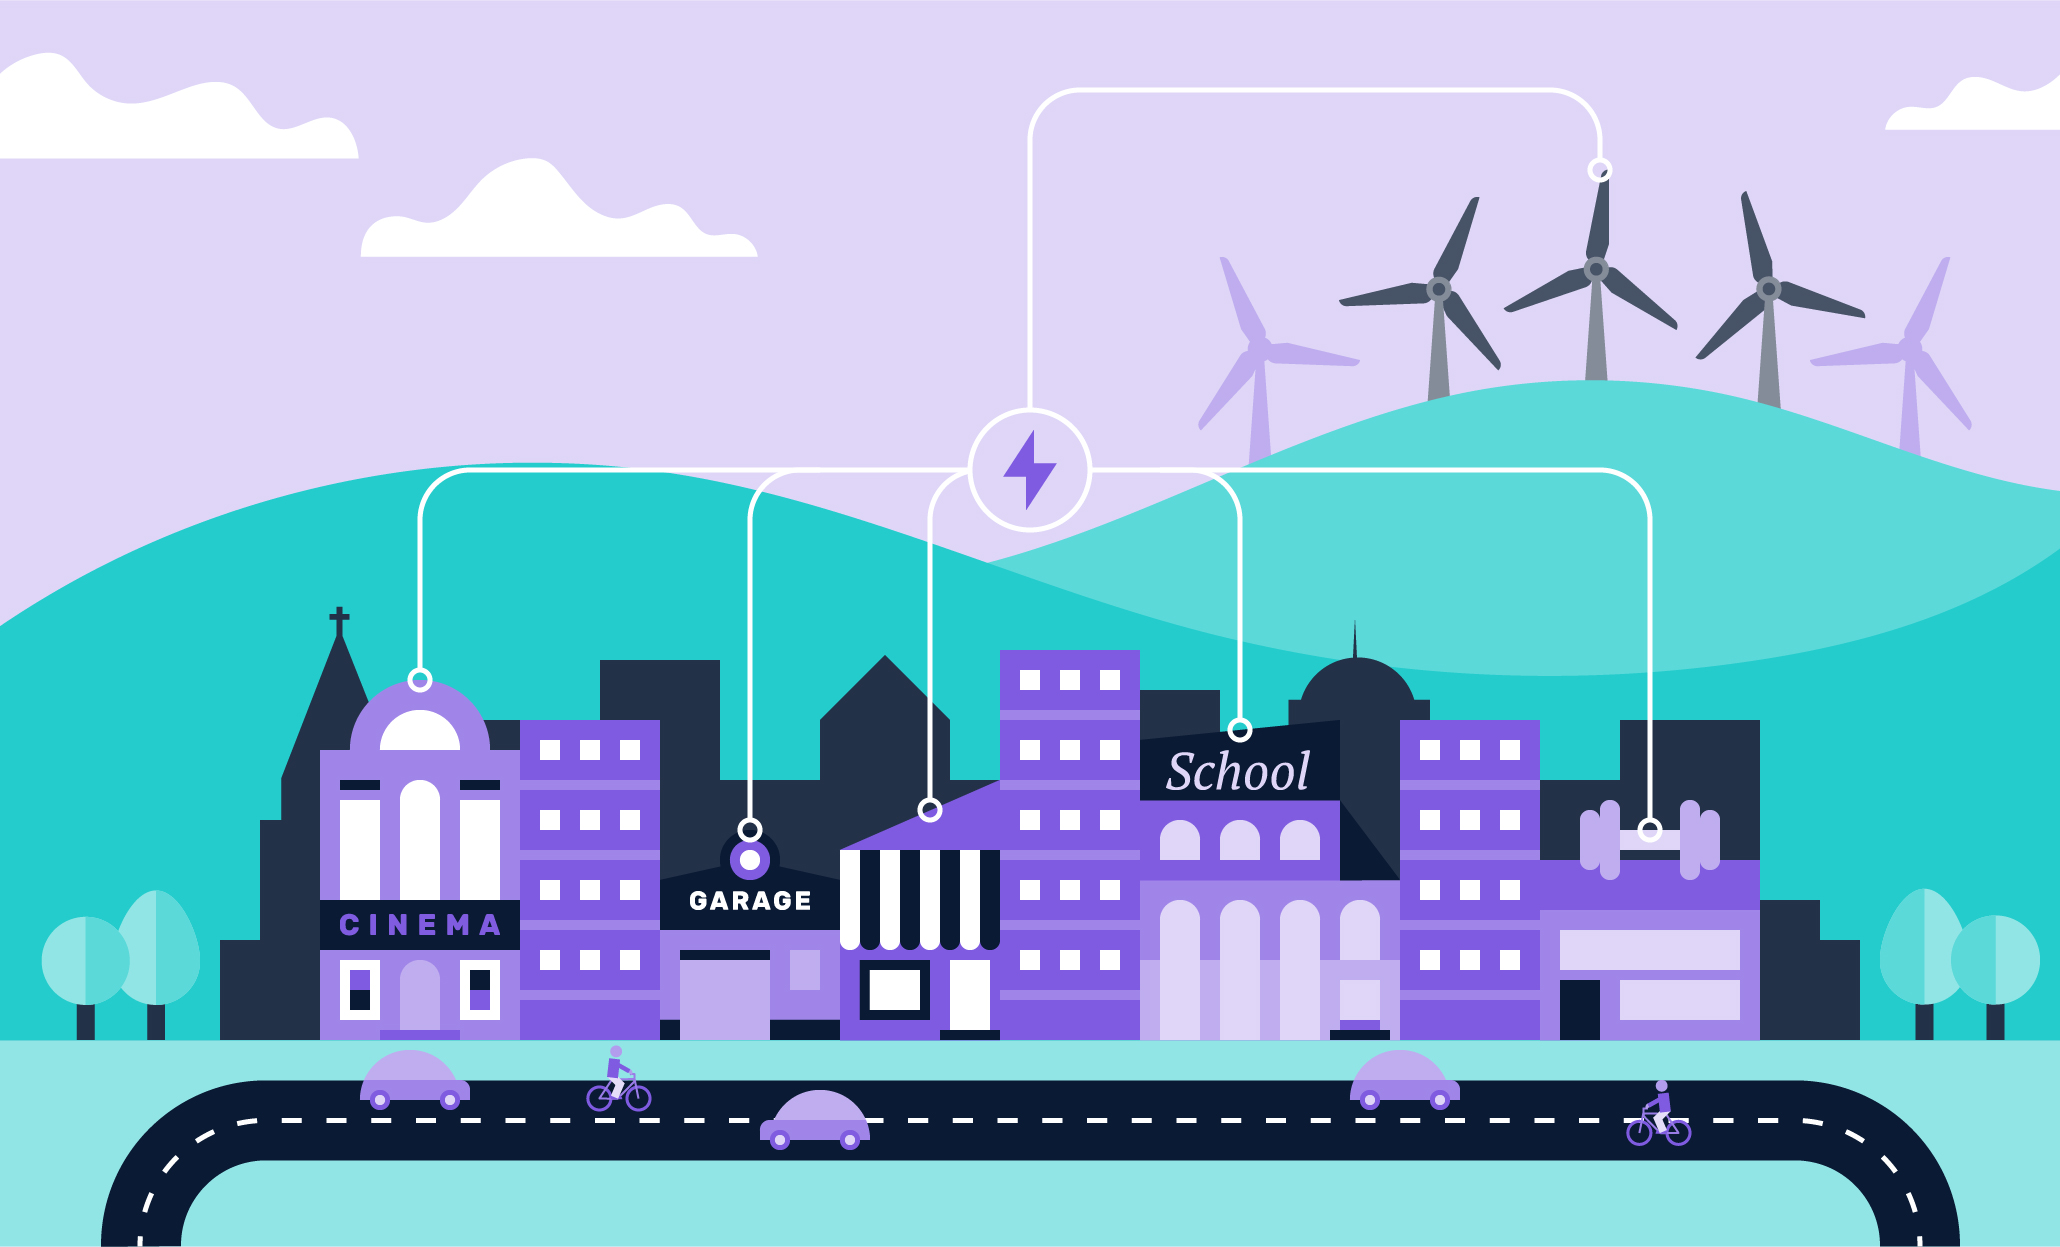 <html><head></head><body><p>High street illustration with a wind farm in the background providing power to local shops</p></body></html>